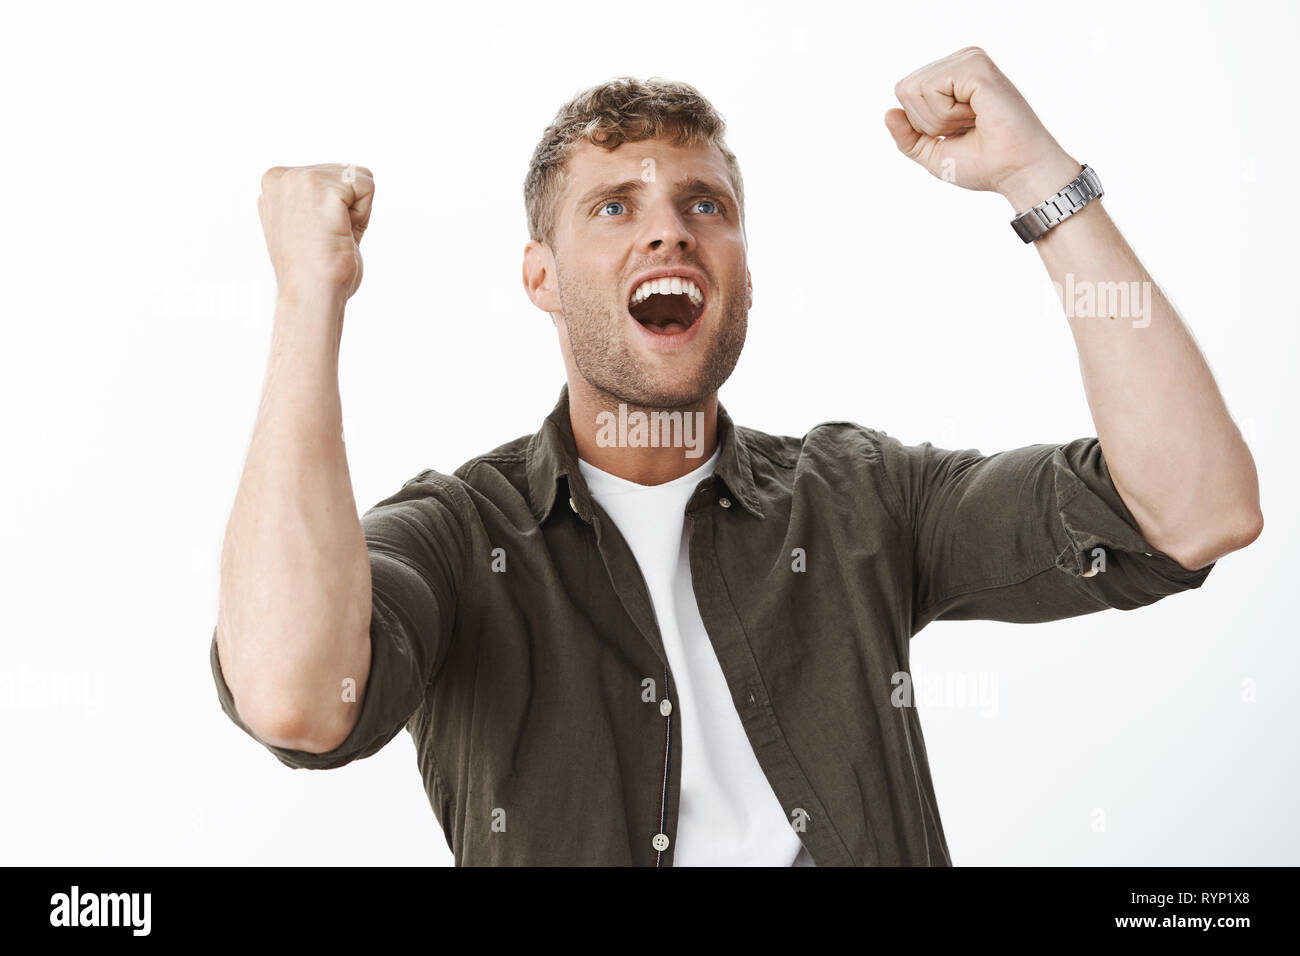 Excited and cheerful handsome man with blue eyes and fair hair looking up at tv screen as cheering having faith in team raising clenched fists in - Stock Image